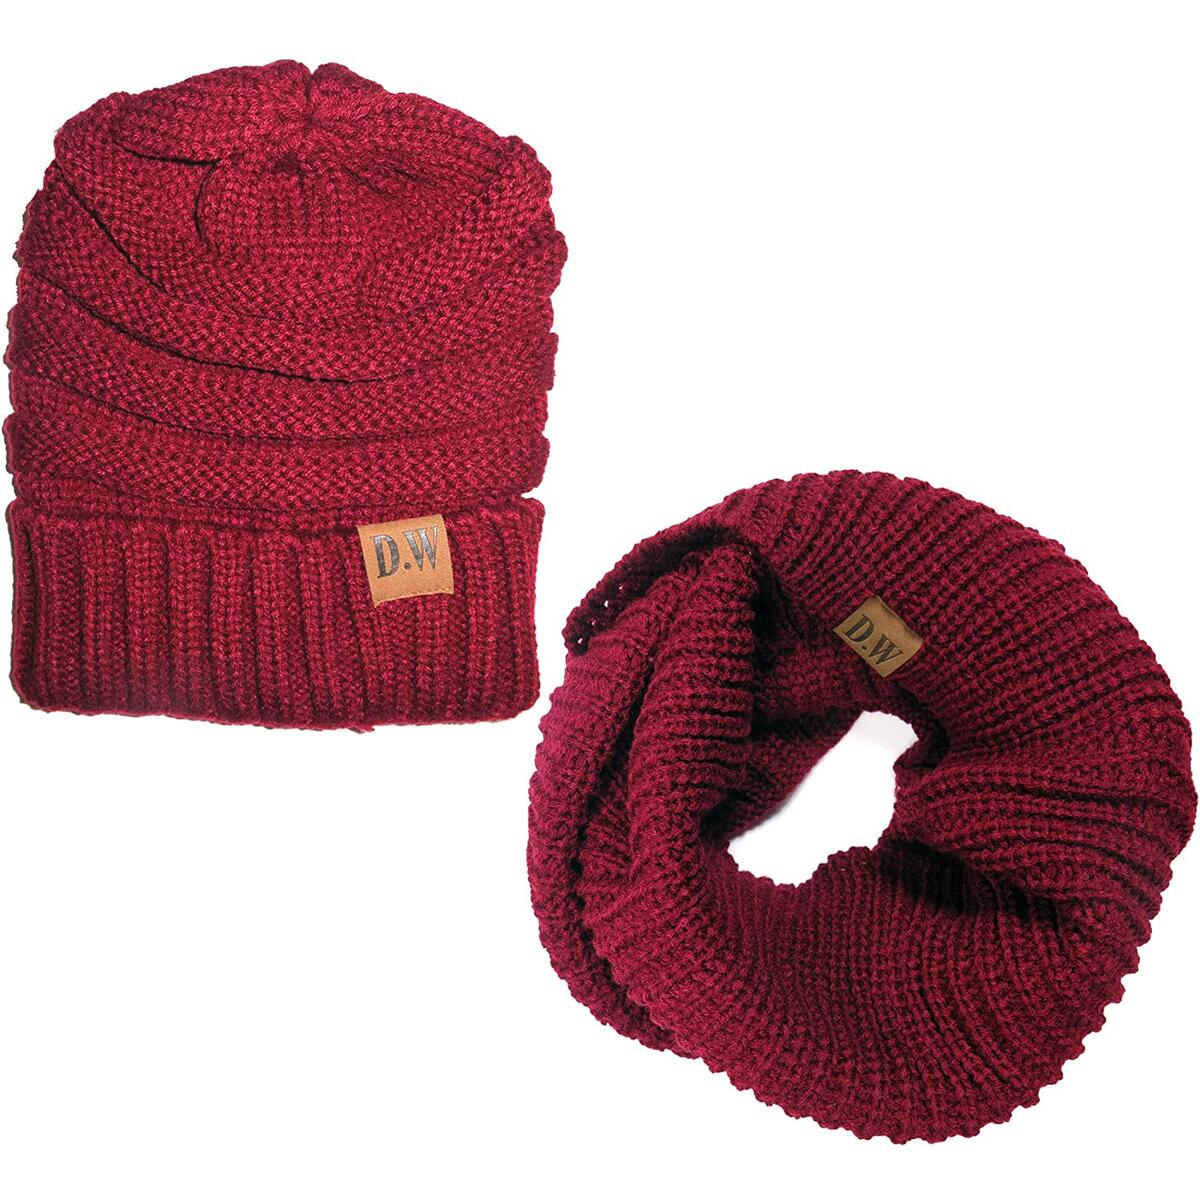 Womens Thick Knit Infinity Loop Scarf And Beanie Hat Set, Warm For The Winter In 6 Colors By Debra Weitzner Burgundy all colors